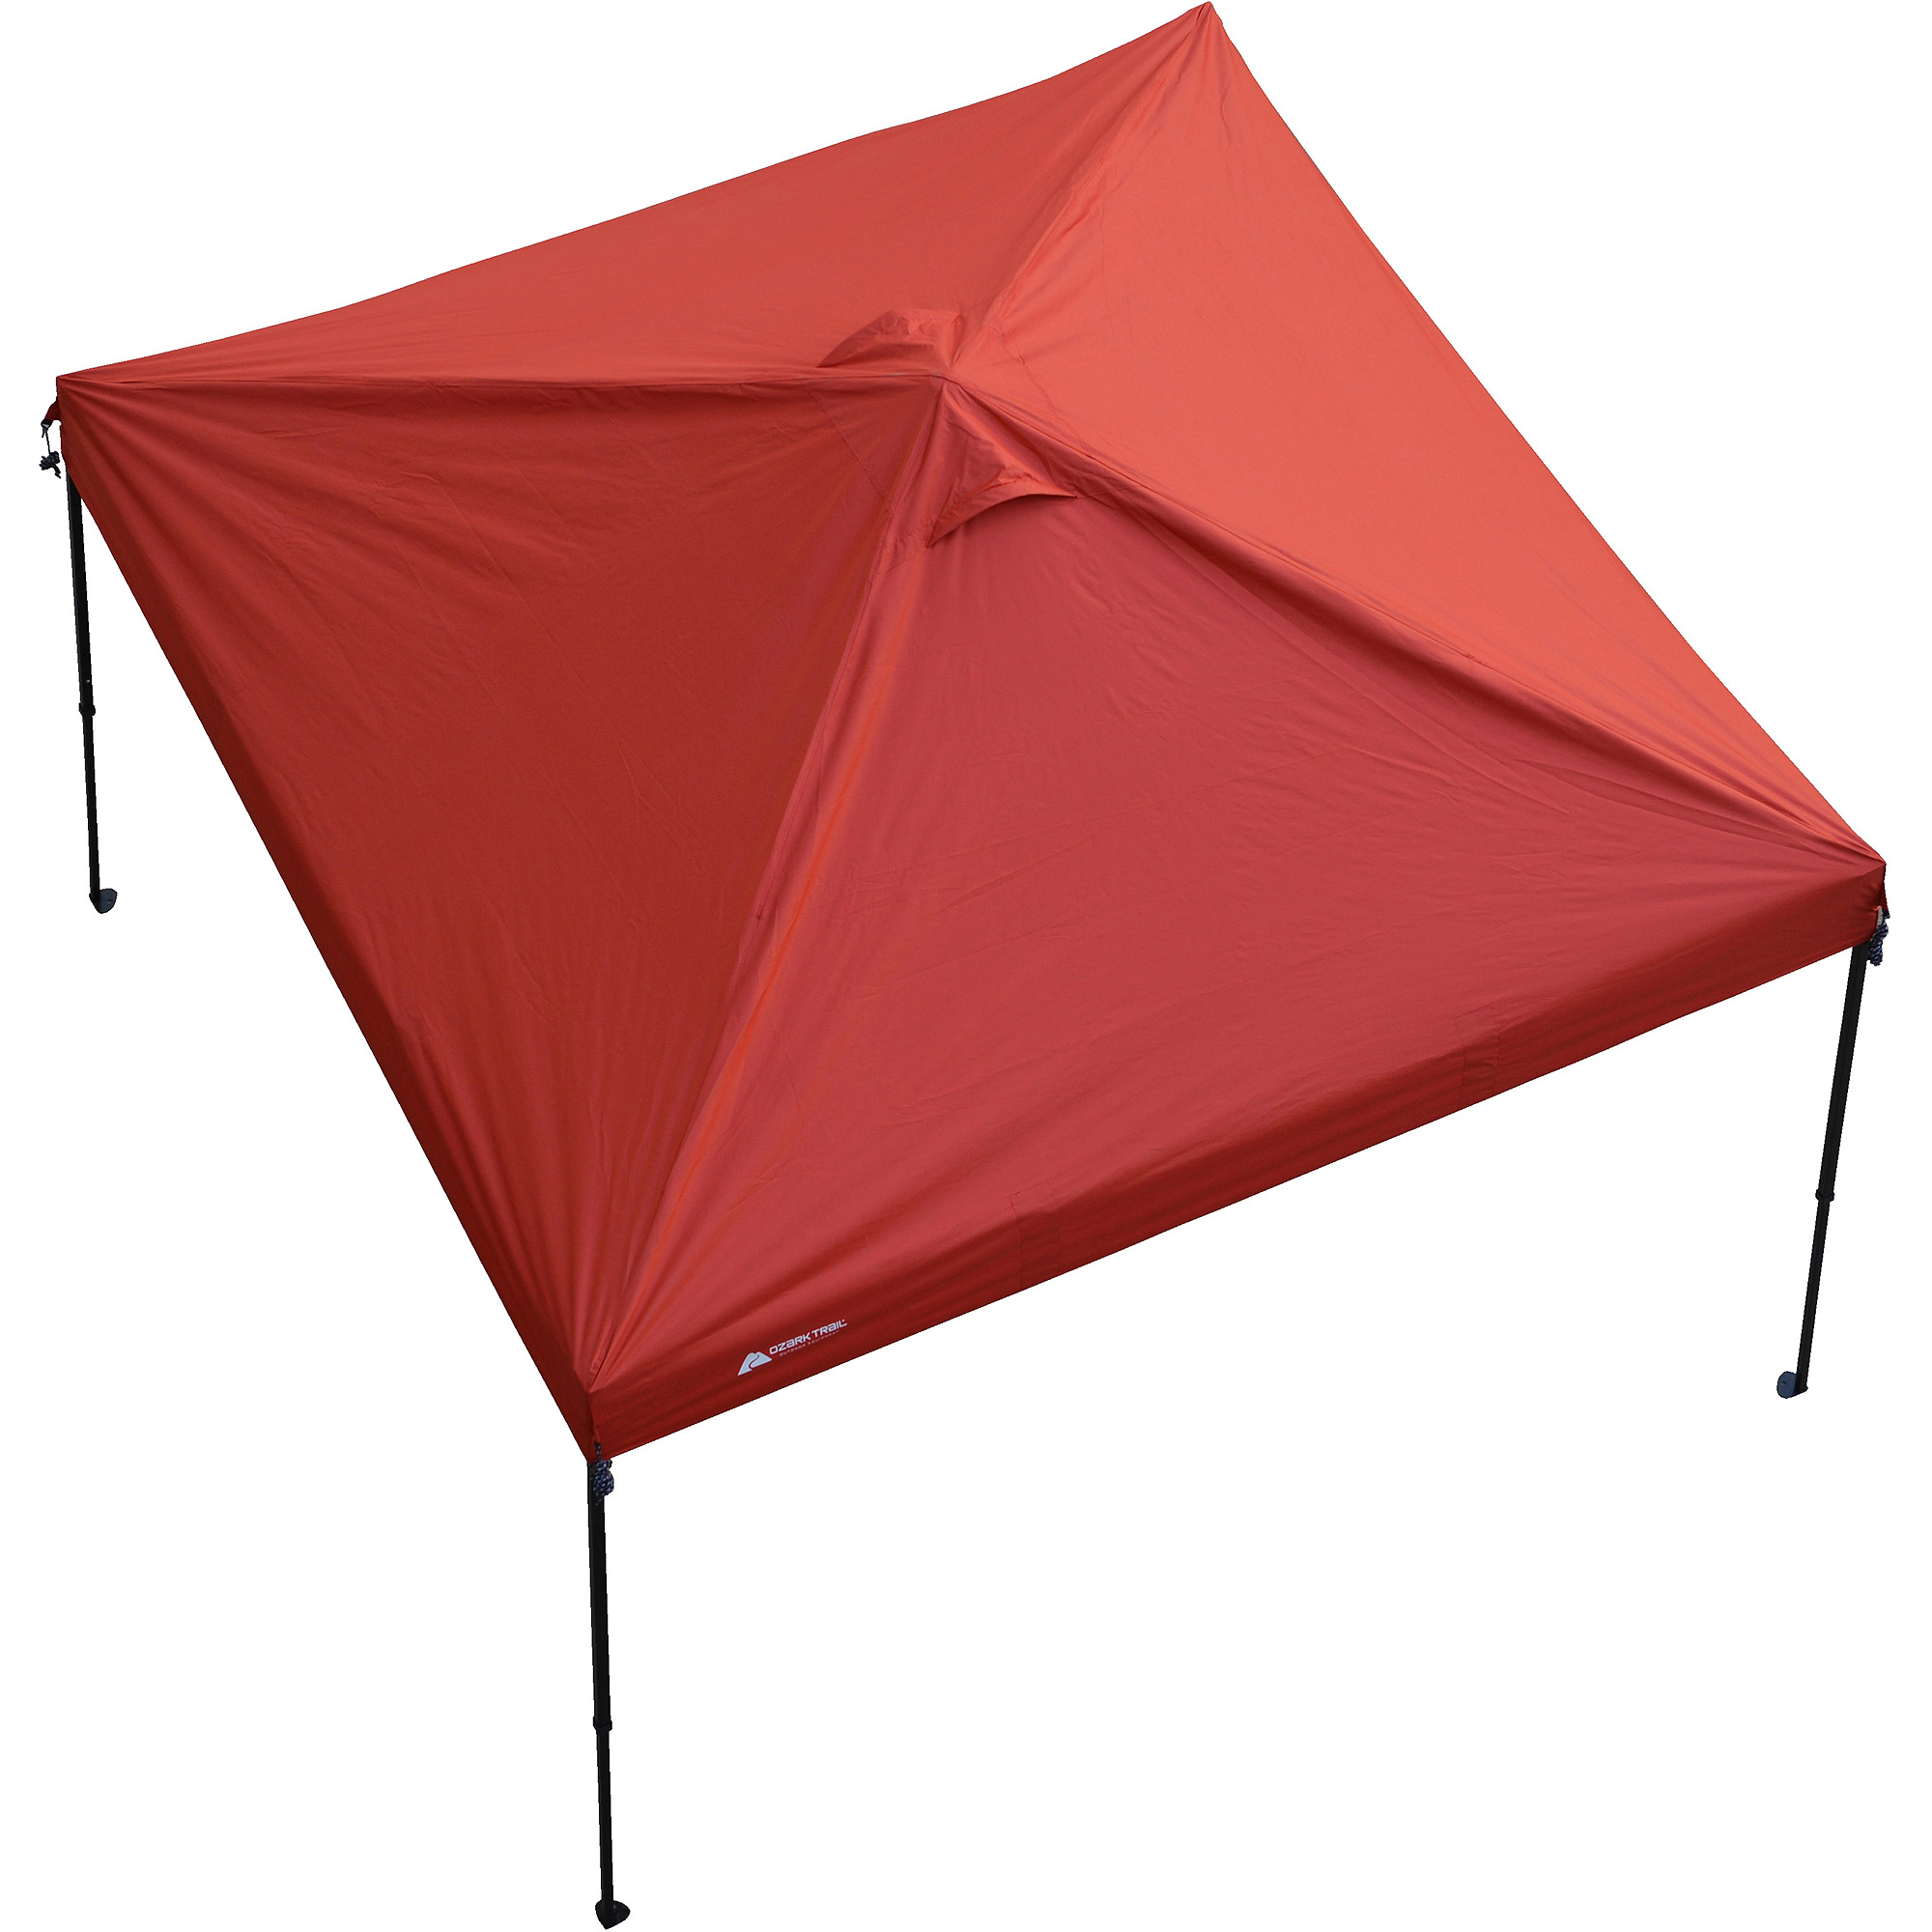 Ozark Trail 10u0027 x 10u0027 Gazebo Top for Tailgating or Sports Events ...  sc 1 st  Walmart & Ozark Trail 10u0027 x 10u0027 Gazebo Top for Tailgating or Sports Events ...